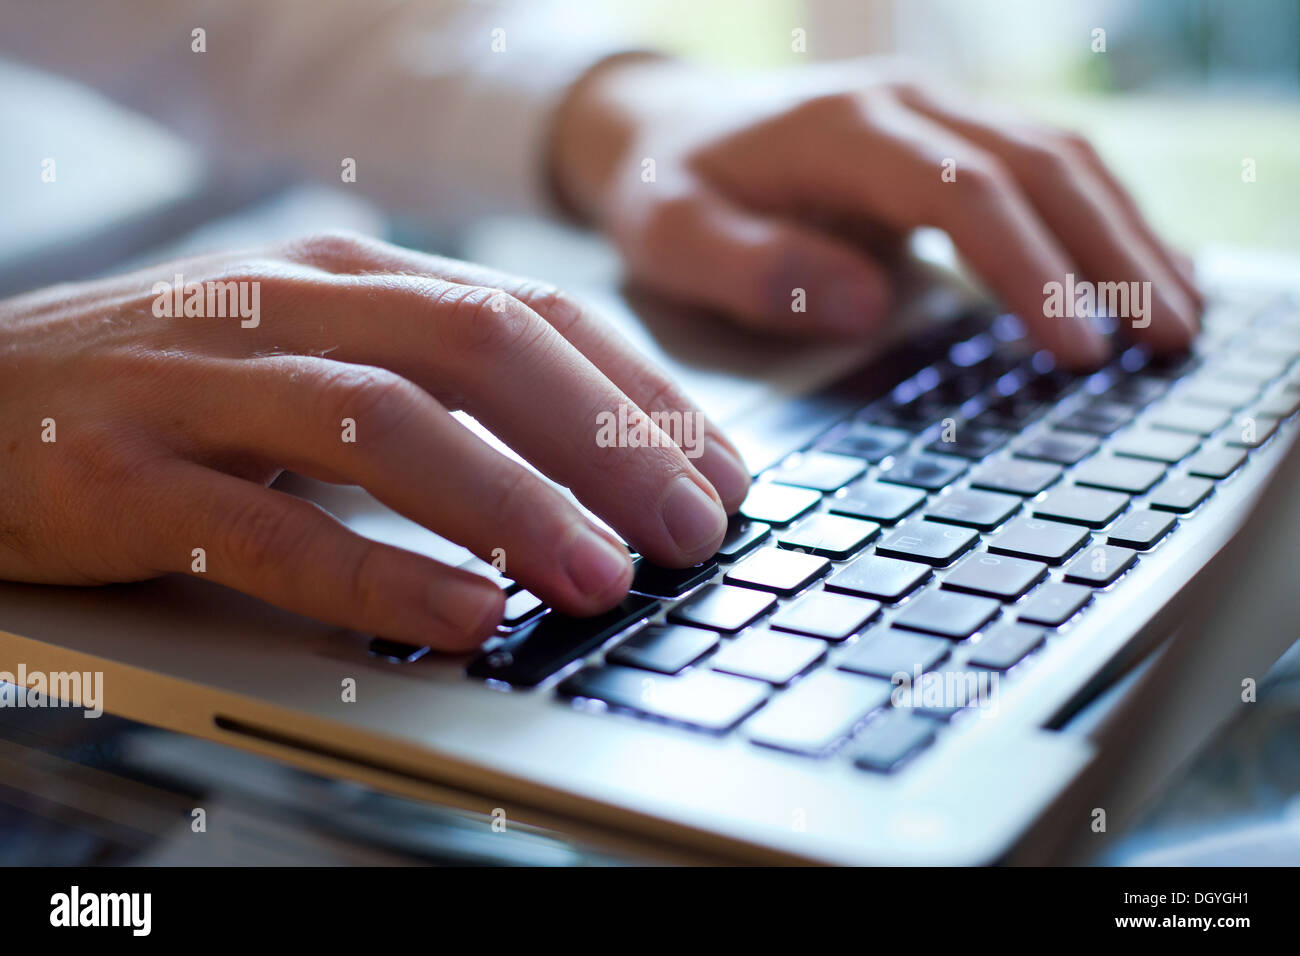 hands of business man type on the keyboard of computer - Stock Image